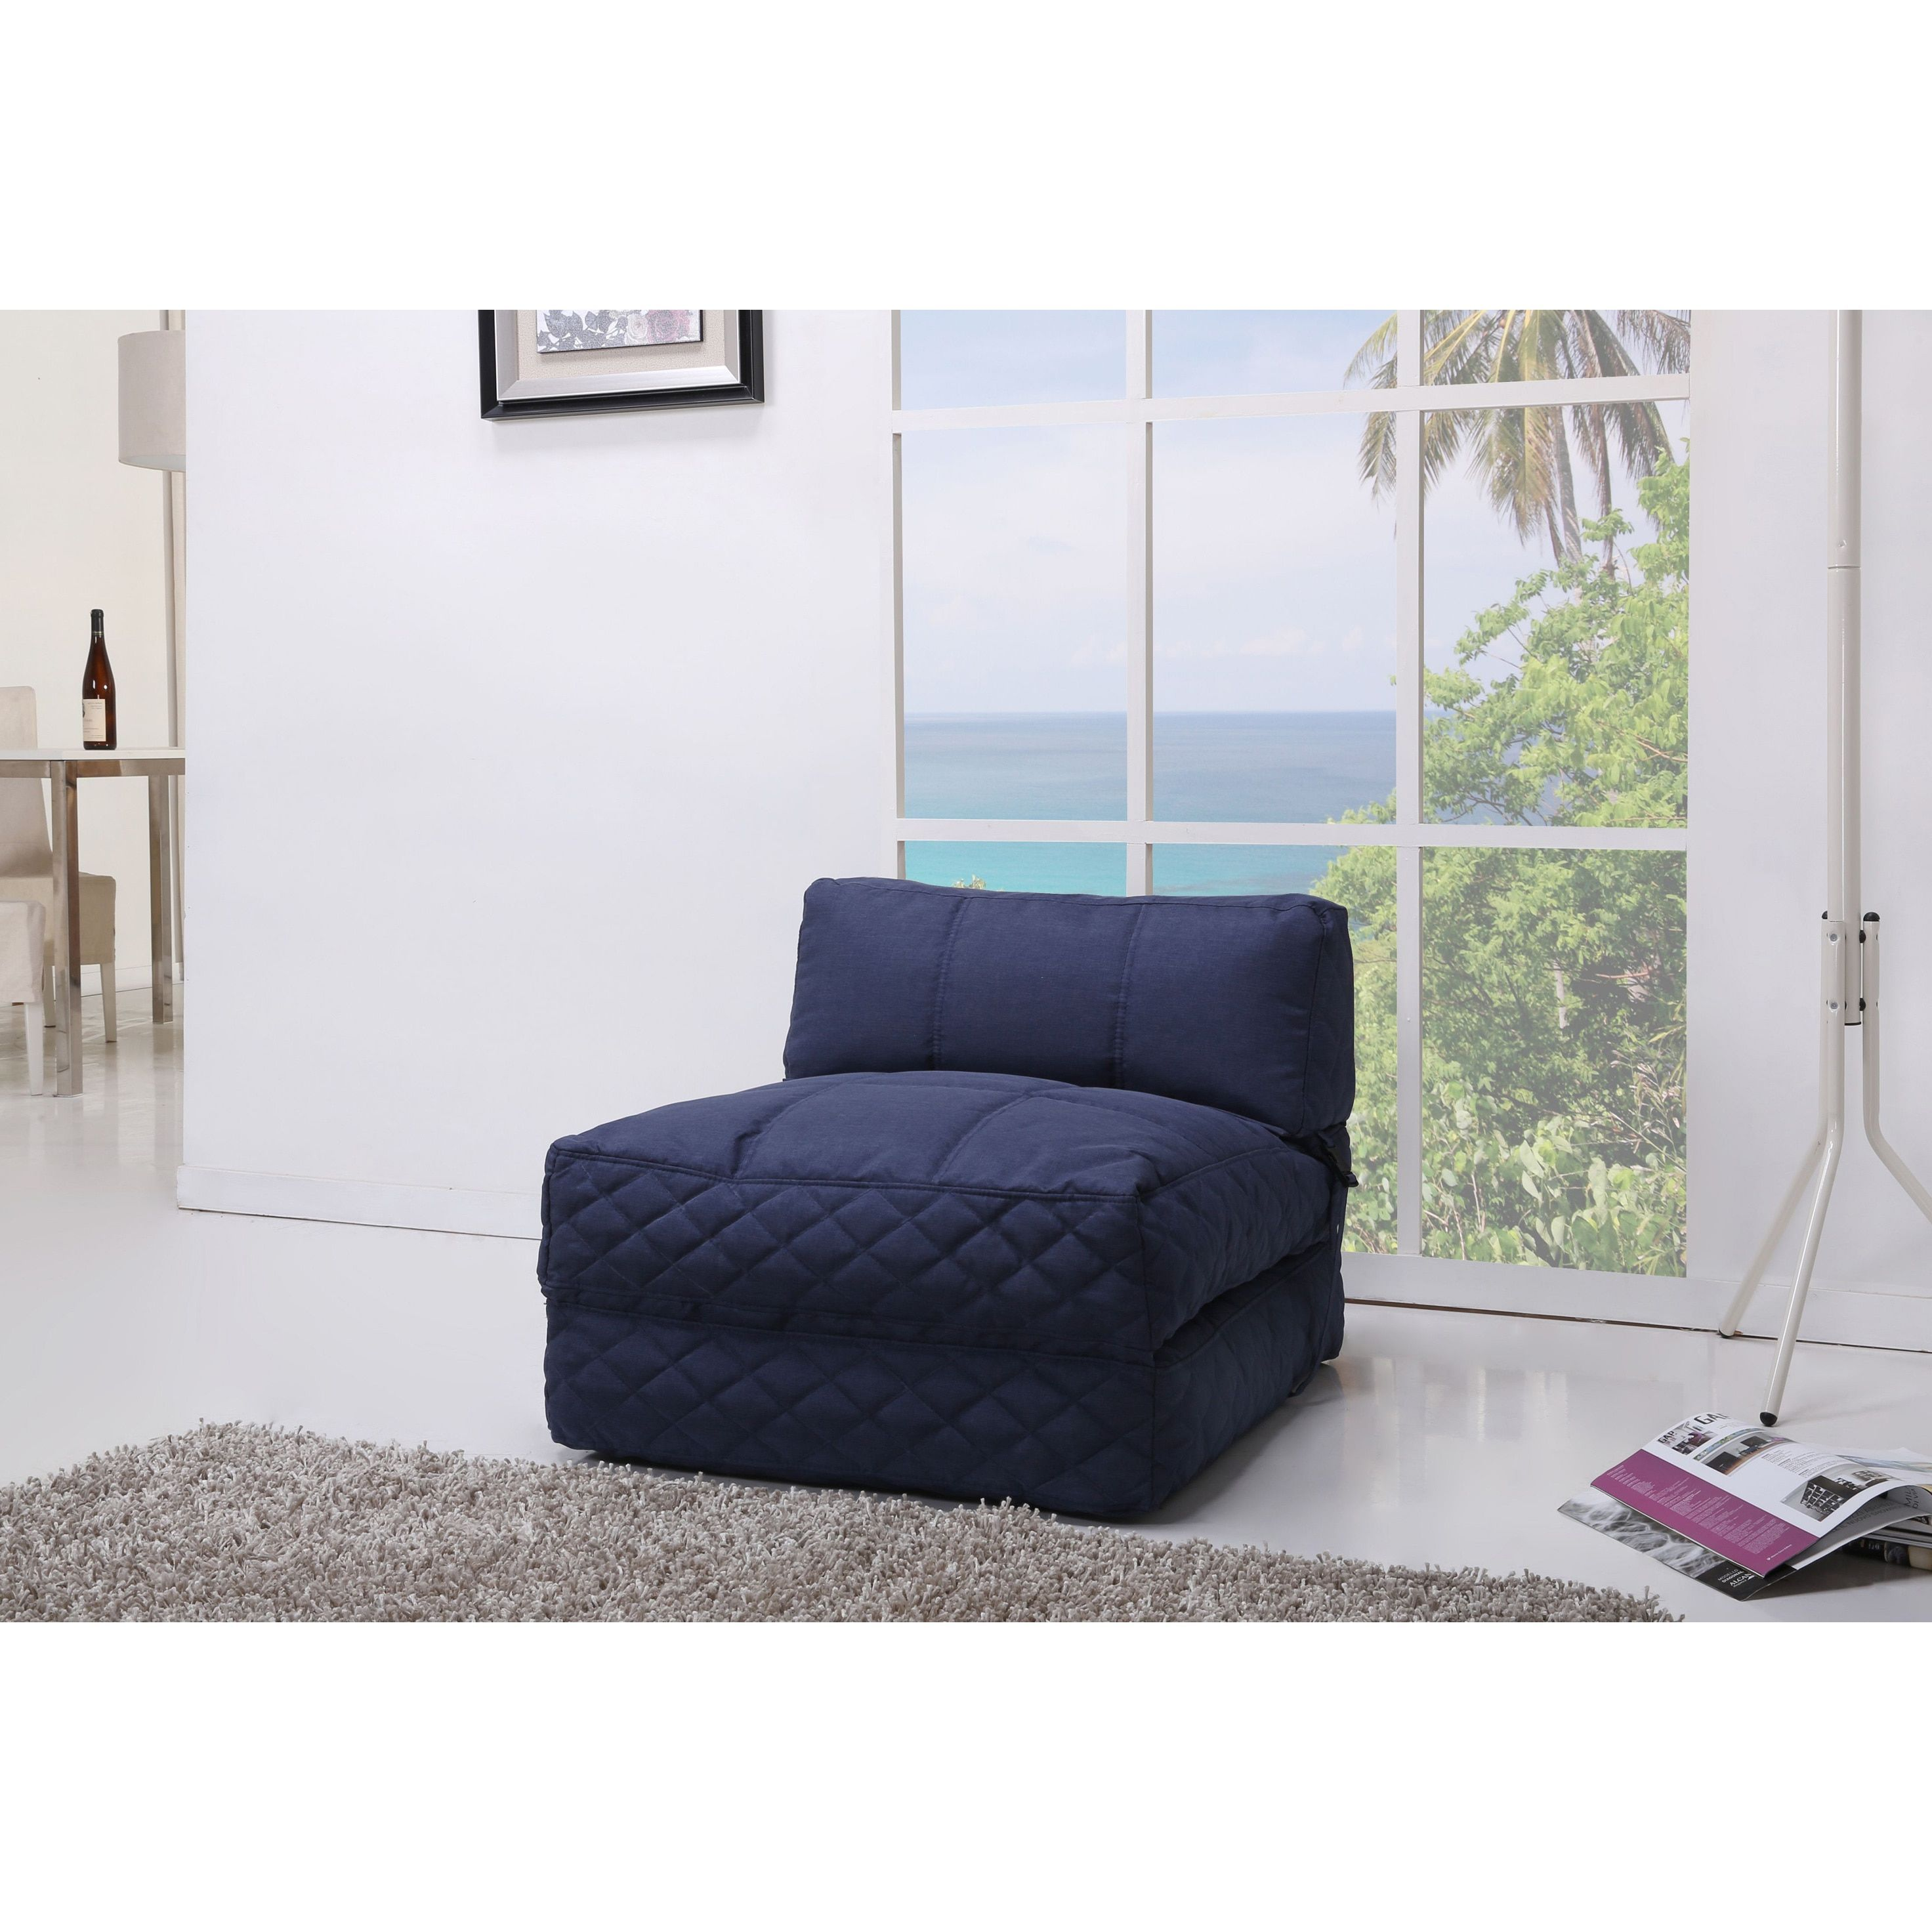 Tremendous Austin Blue Bean Bag Chair Bed In 2019 Products Unemploymentrelief Wooden Chair Designs For Living Room Unemploymentrelieforg